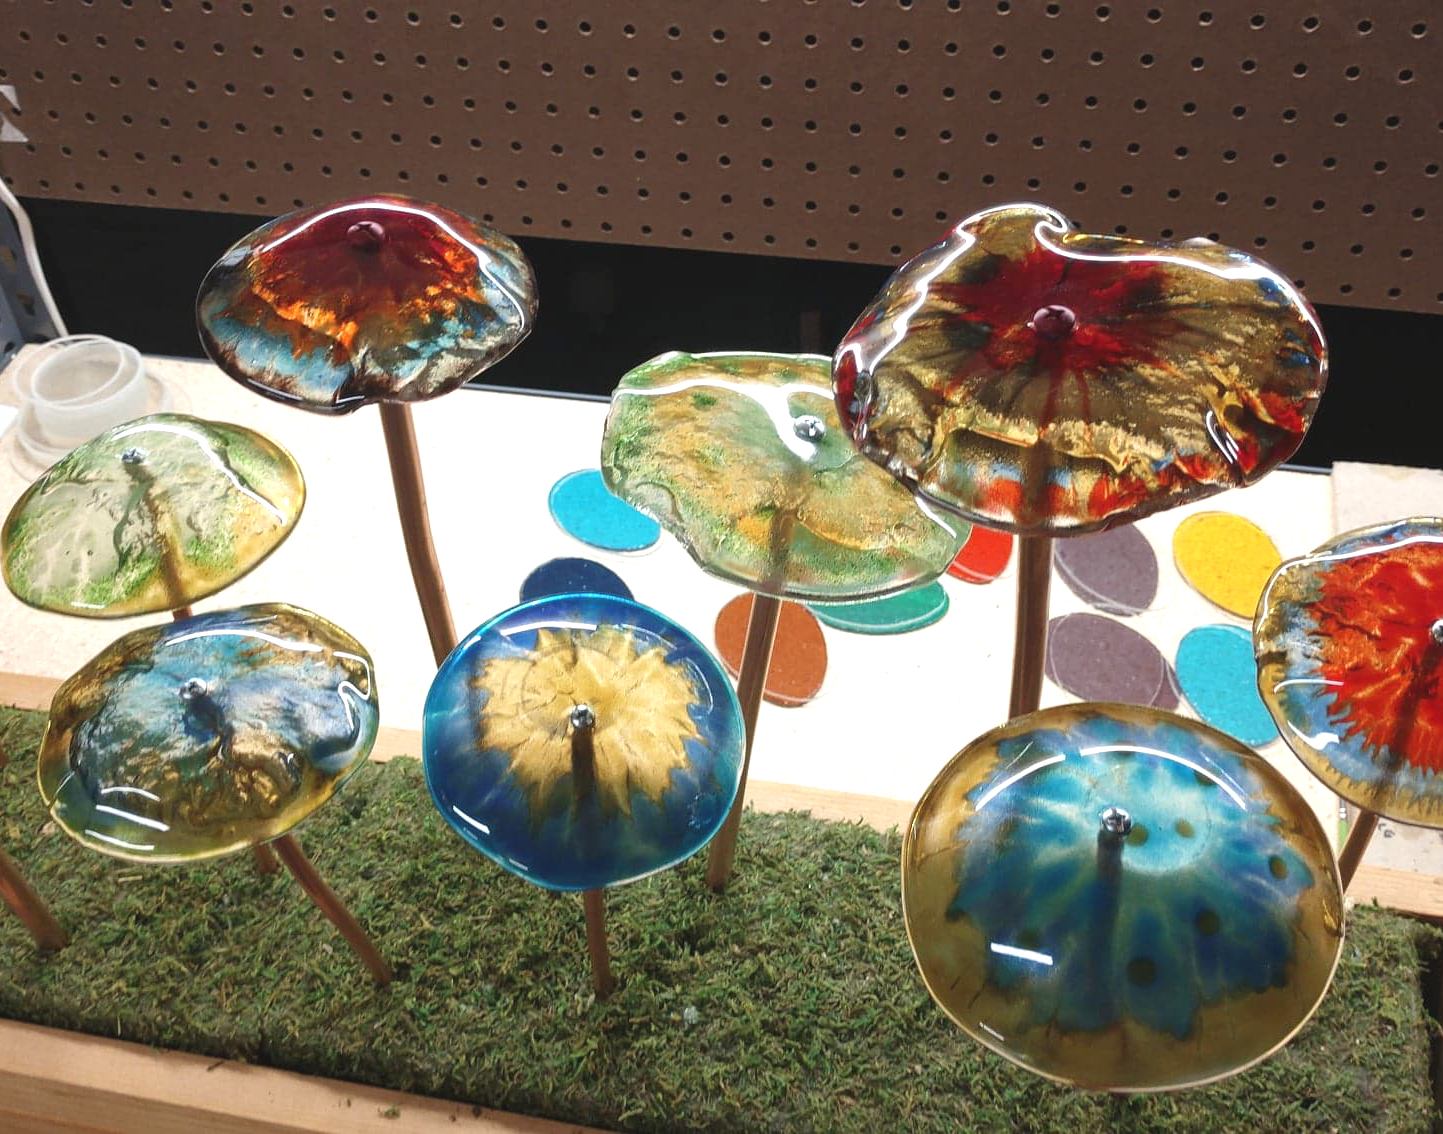 Glass Mushrooms Group Horizontal crop.jpg